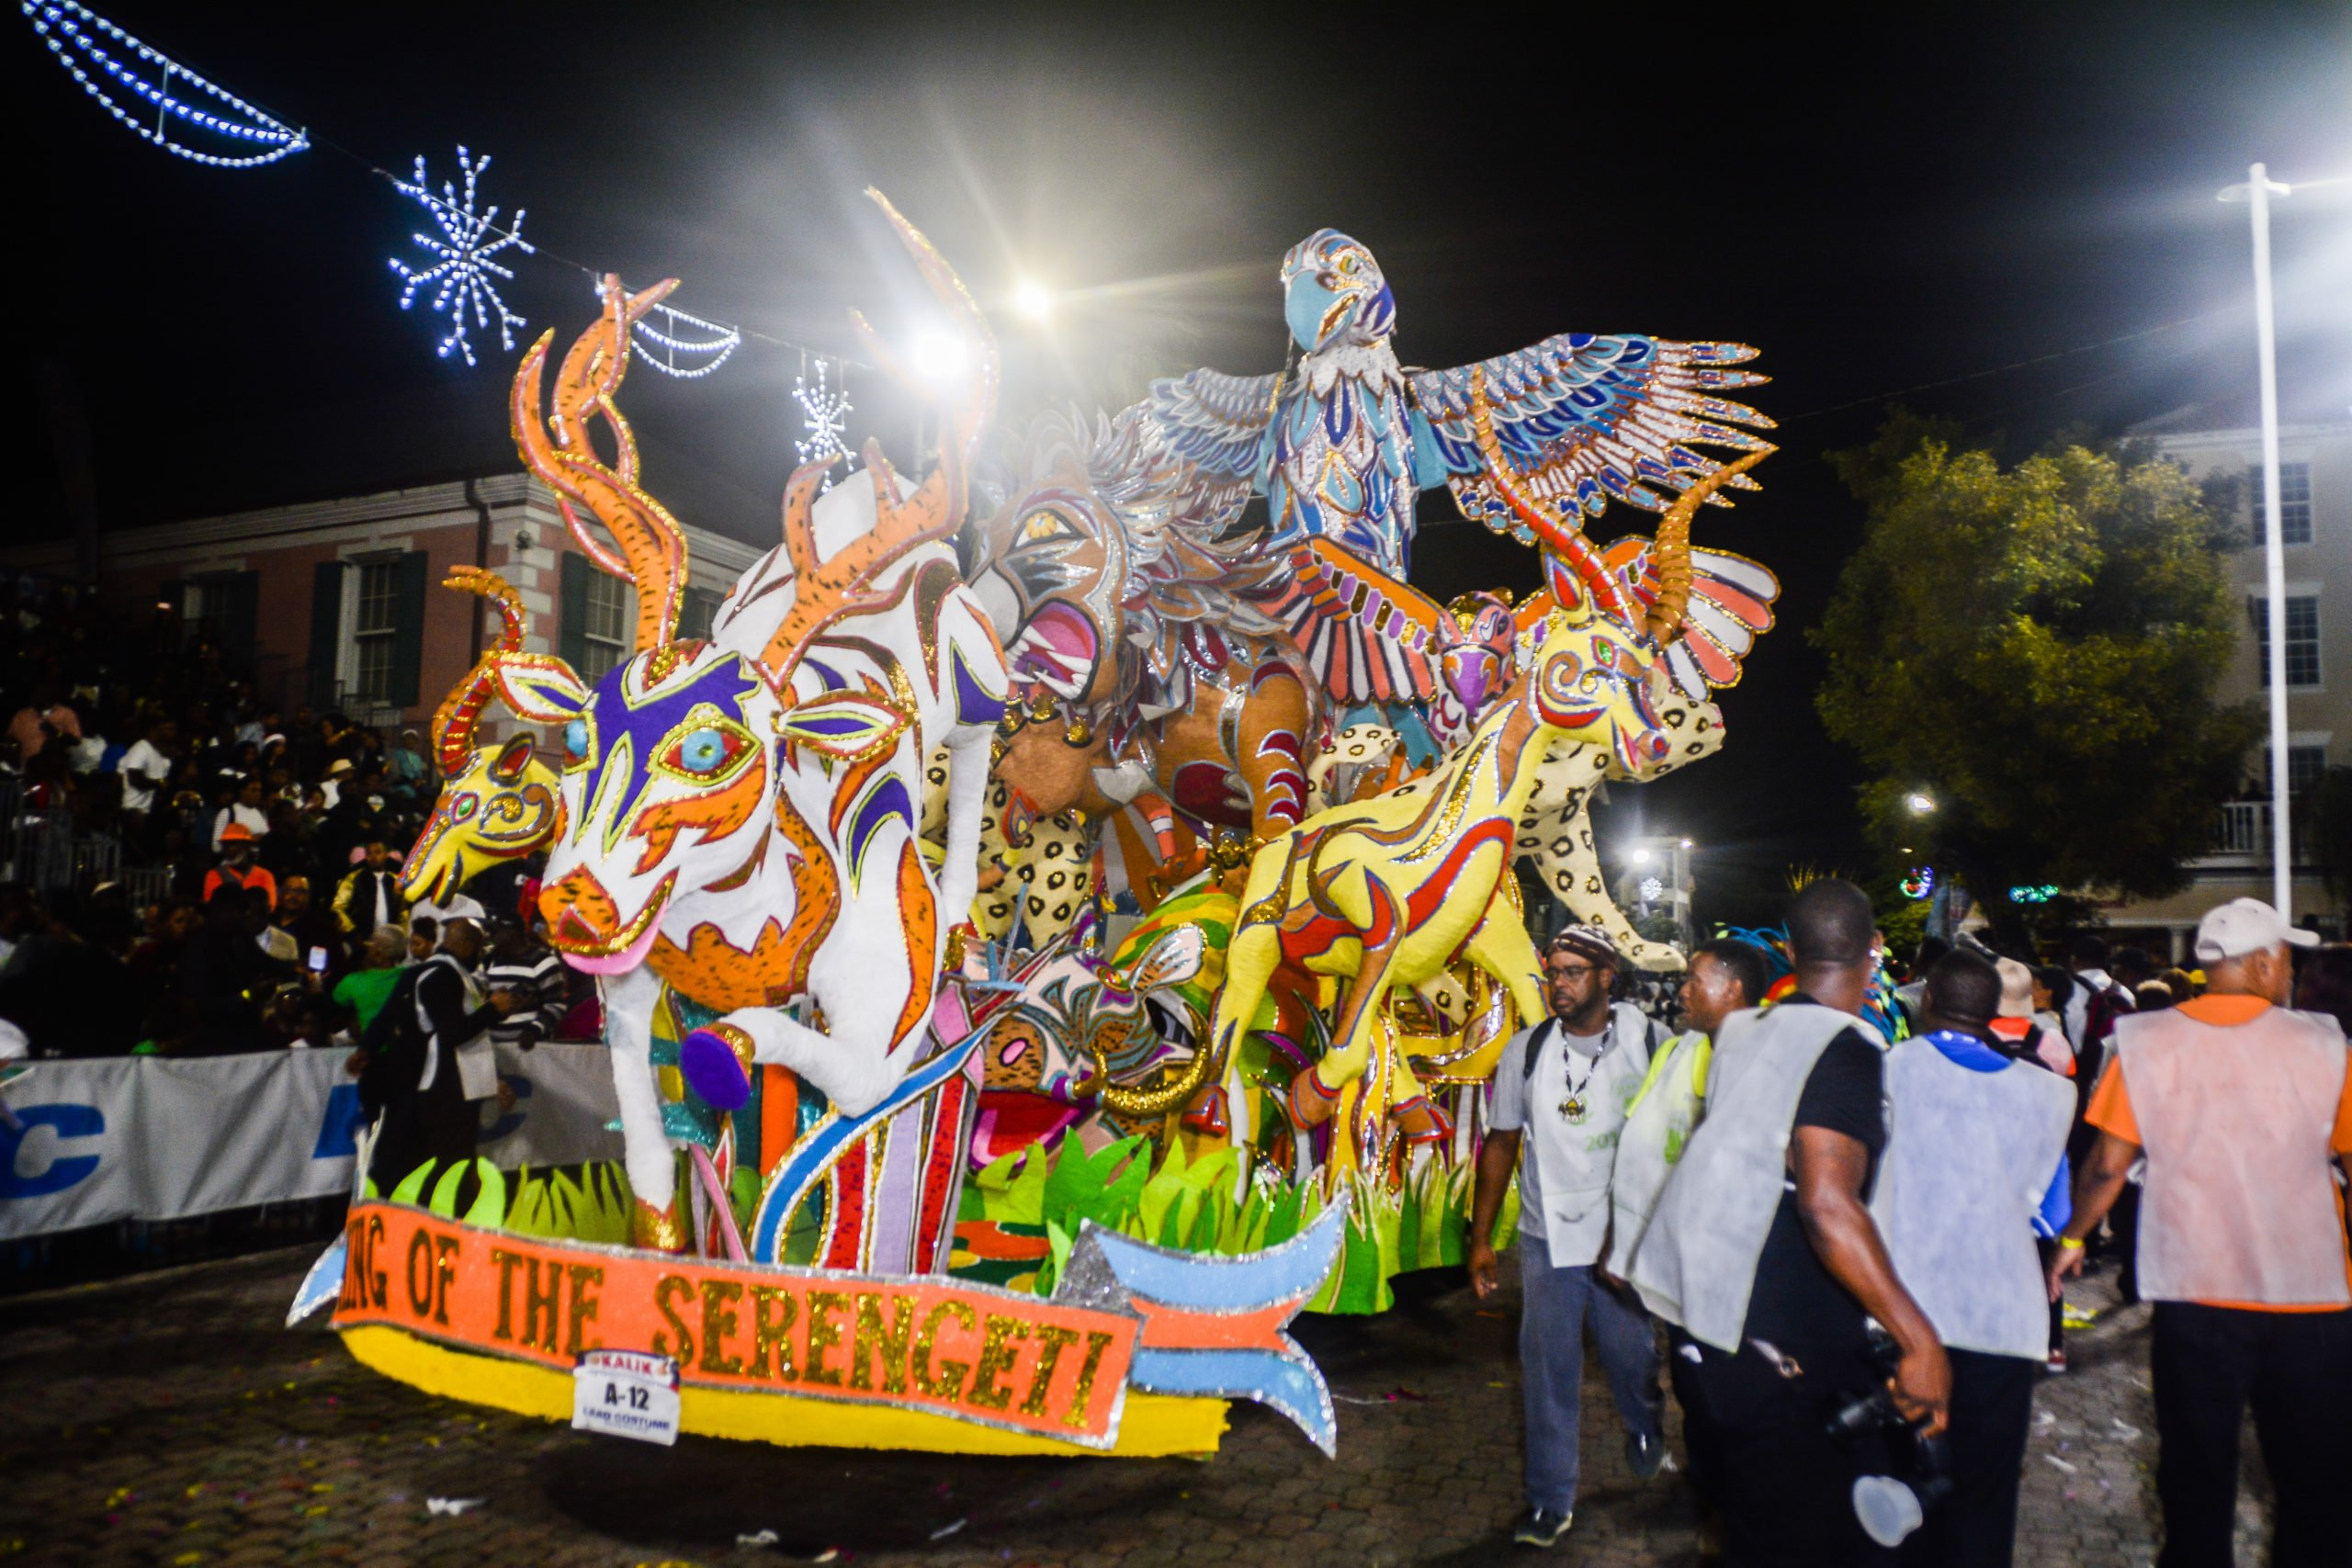 30 percent chance of rain during New Year's Junkanoo parade